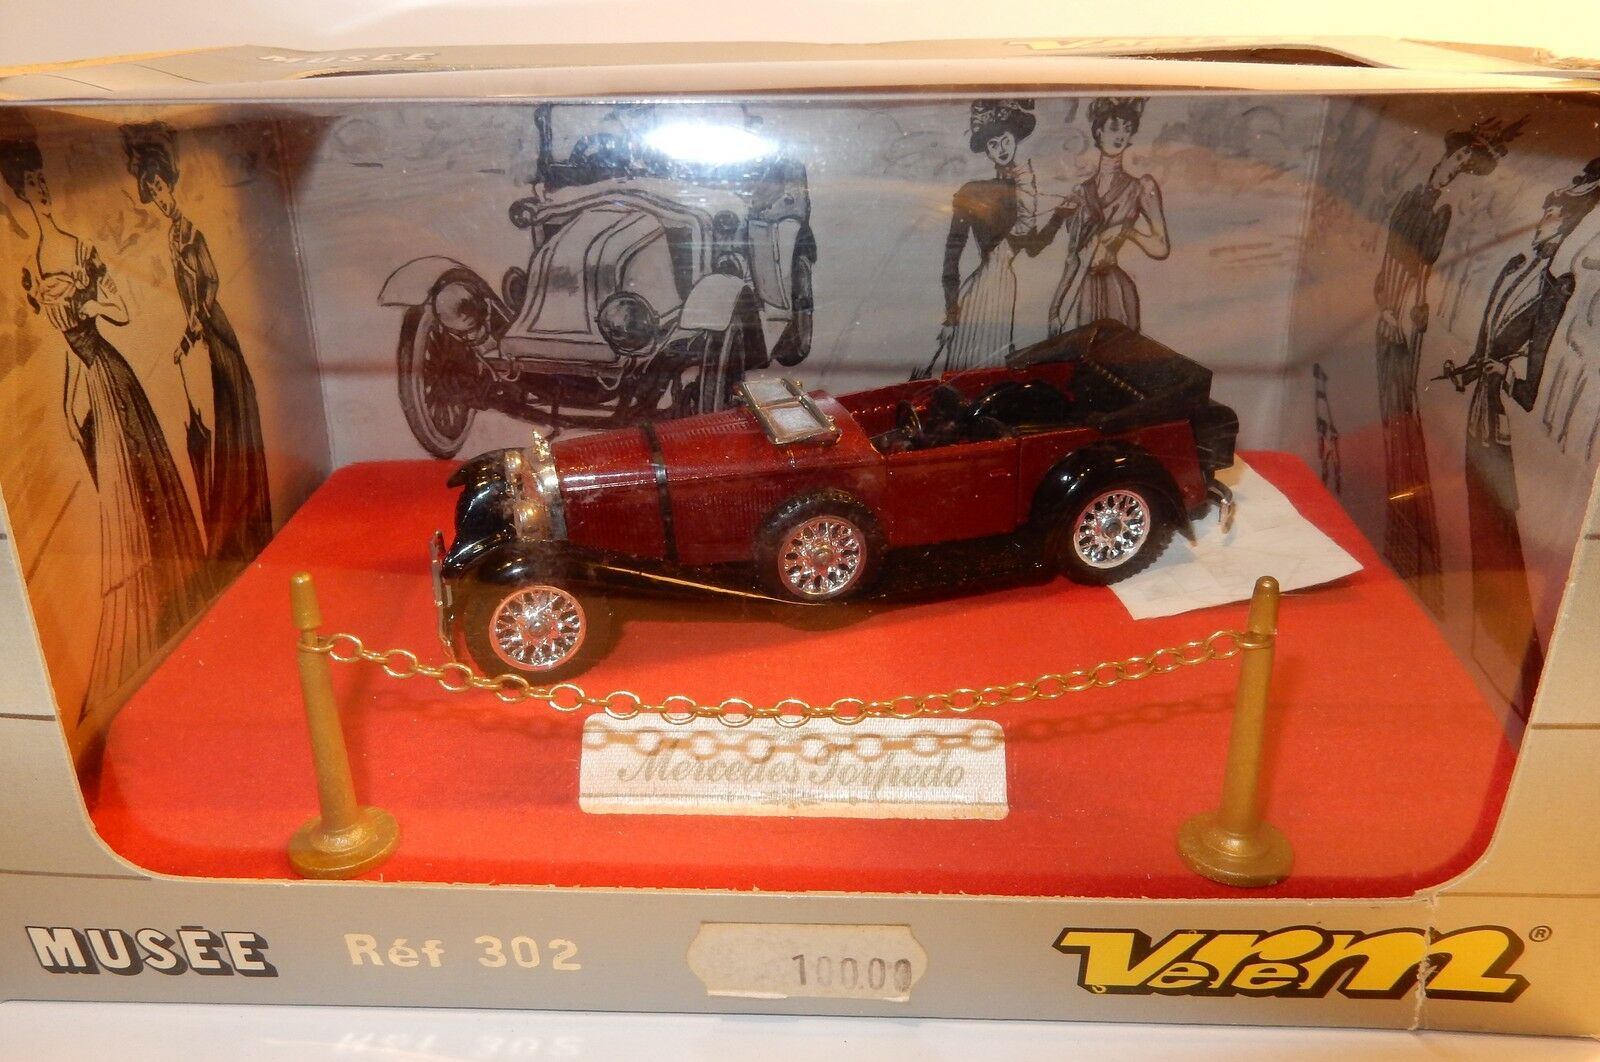 VEREM SOLIDO OLD MERCEDES TORPEDO SS 1928 RED GARNET 1 43 REF 302 IN BOX